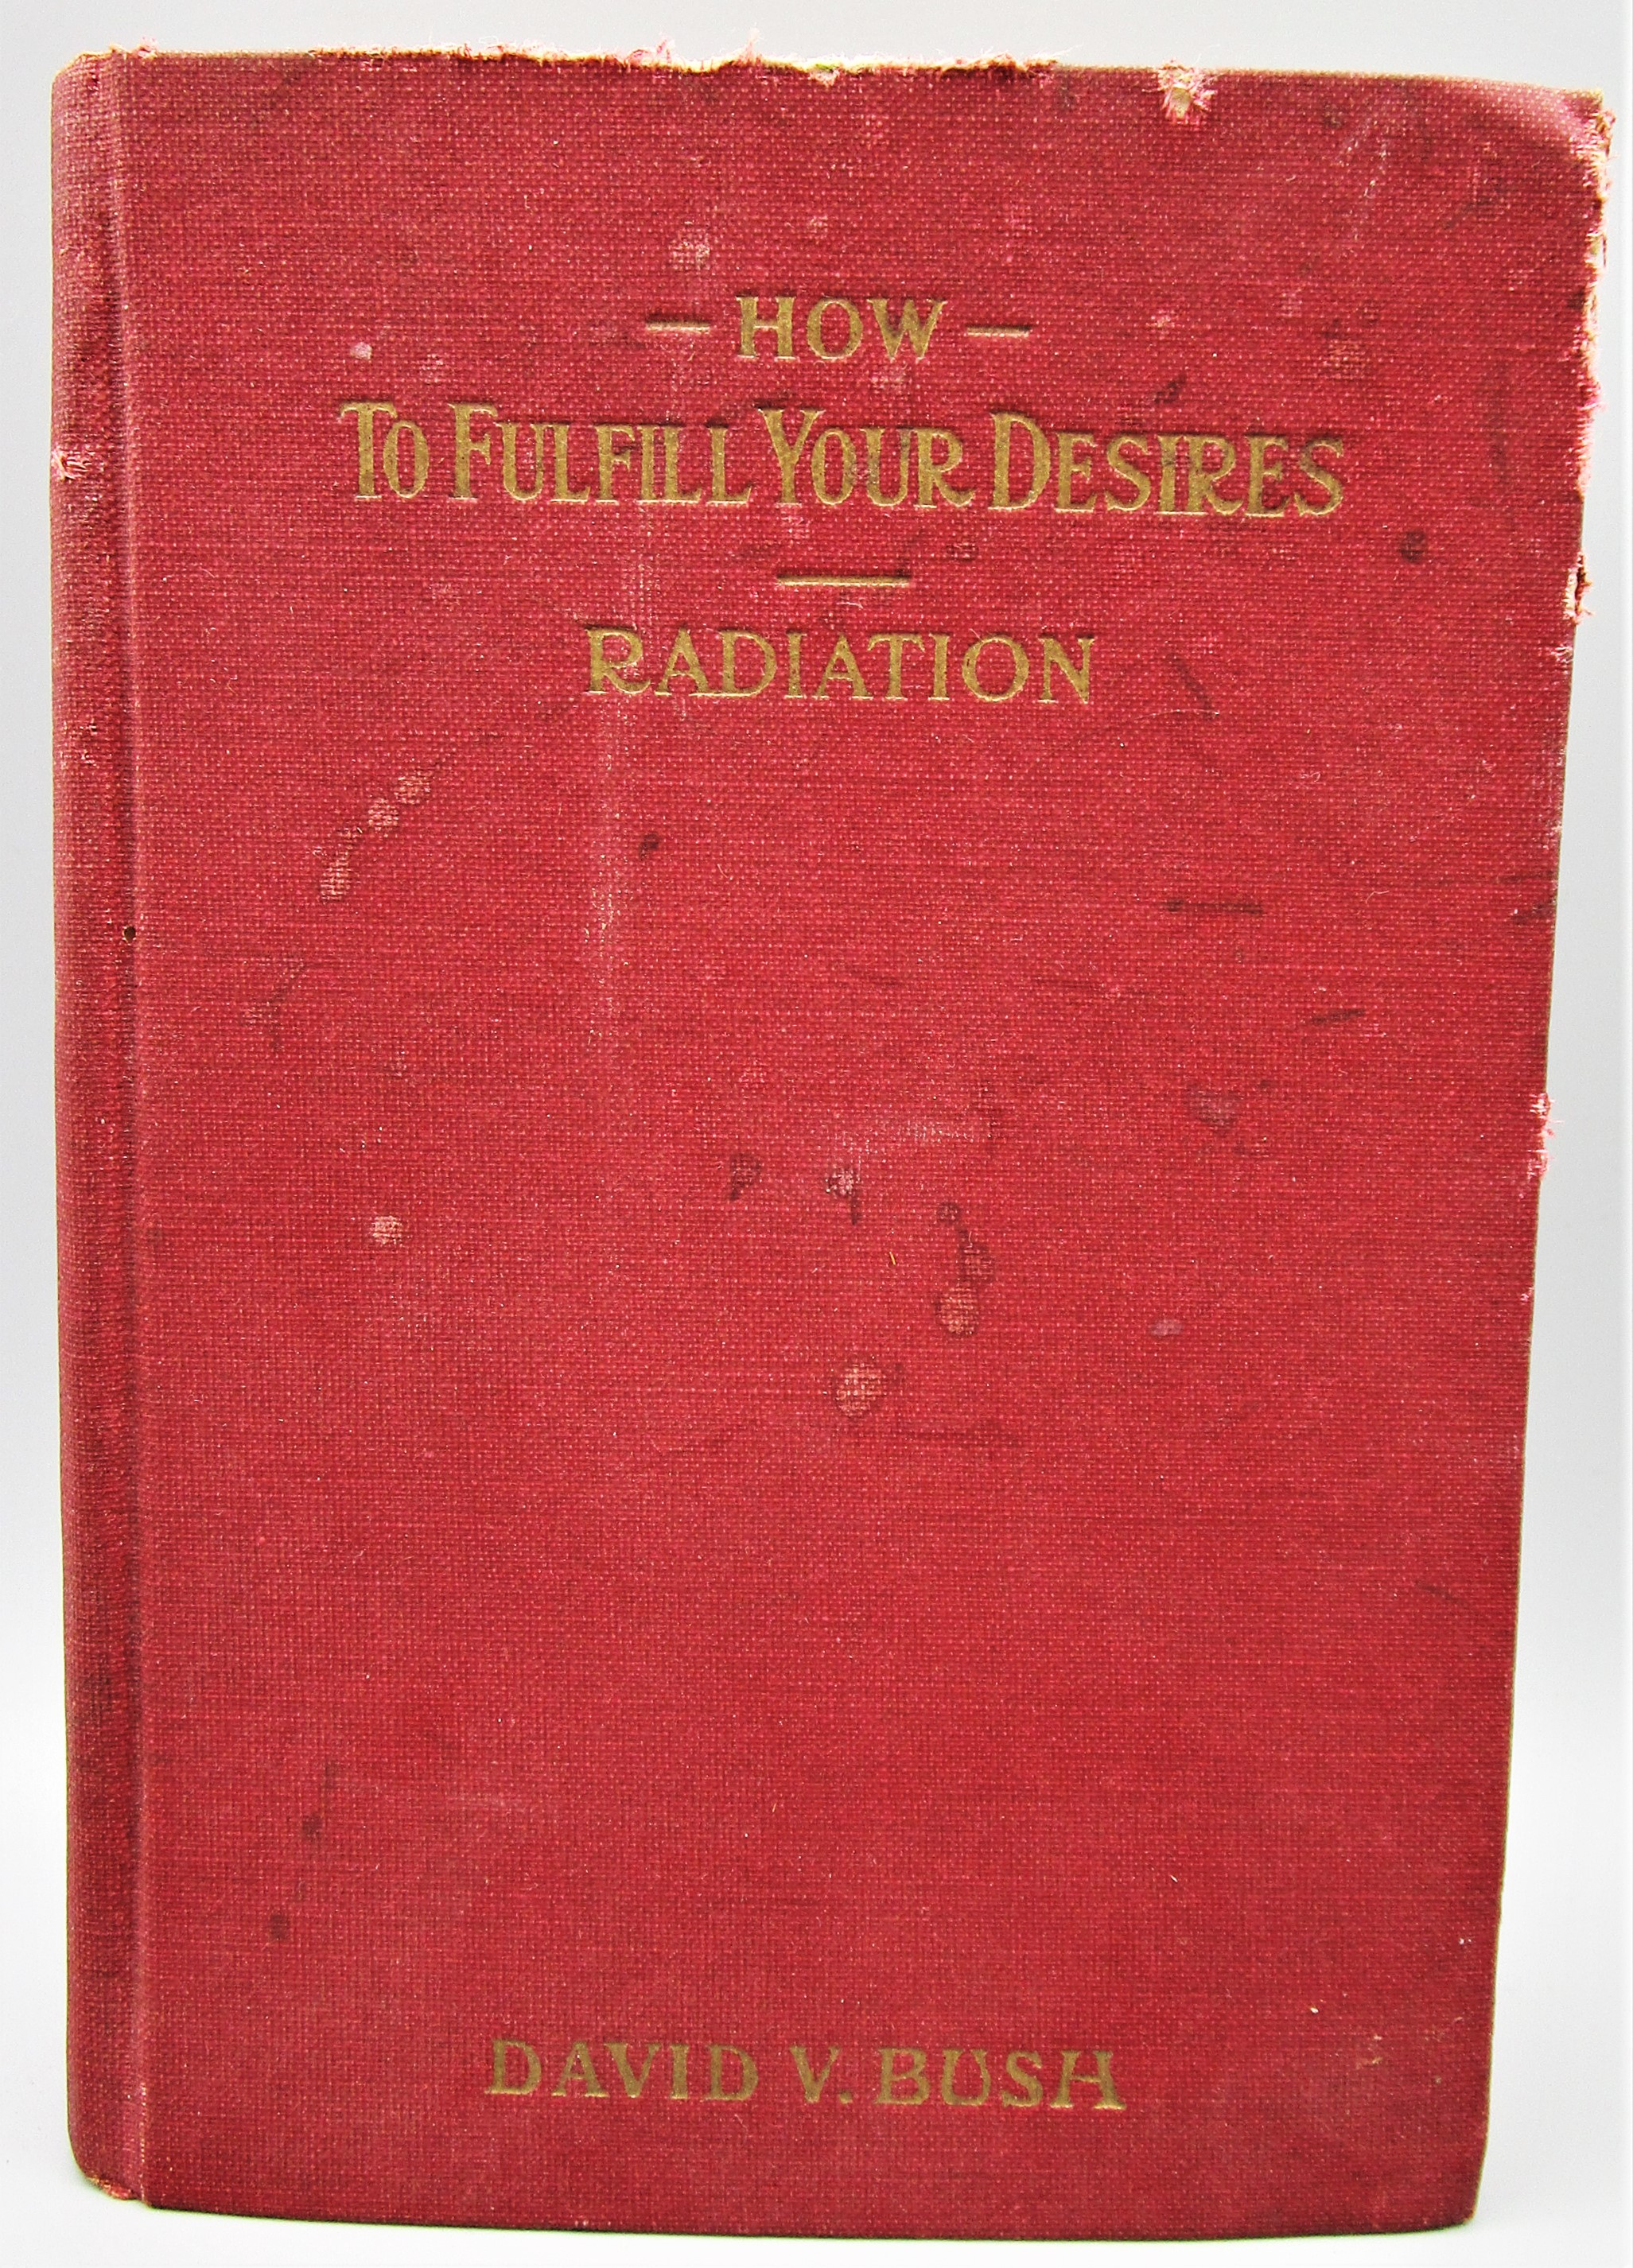 HOW TO FULFILL YOUR DESIRES, by David V. Bush - 1929 [1st Ed]